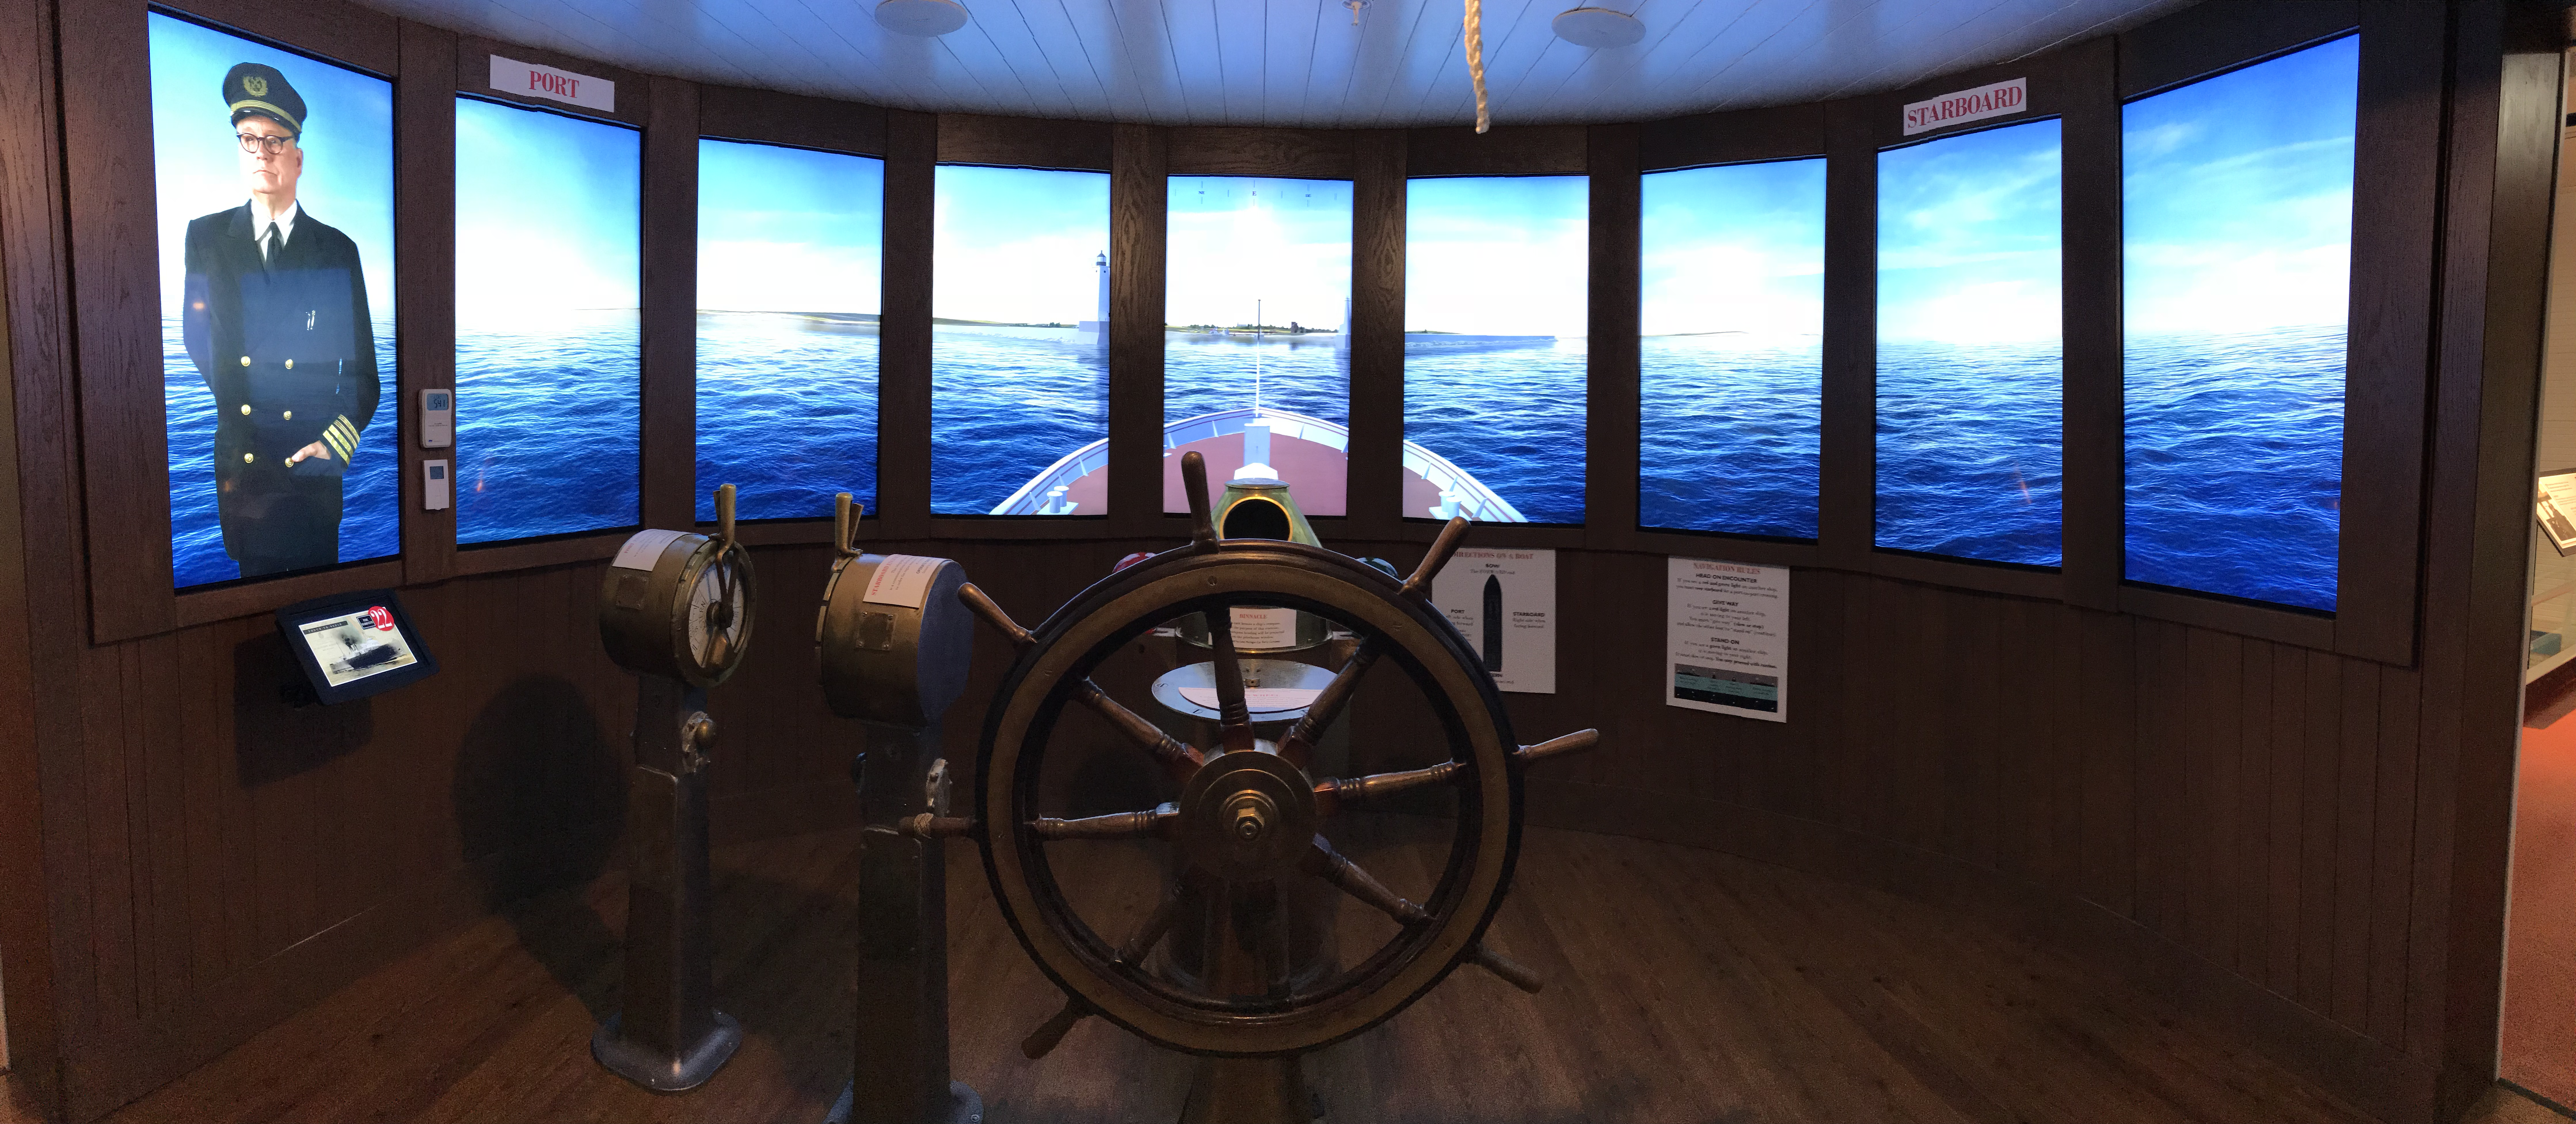 Through an exciting interactive experience, Bluewater helps transport museumgoers at the Port of Ludington Maritime Museum to the pilot house of the Pere Marquette 22 car ferry in the 1930s.